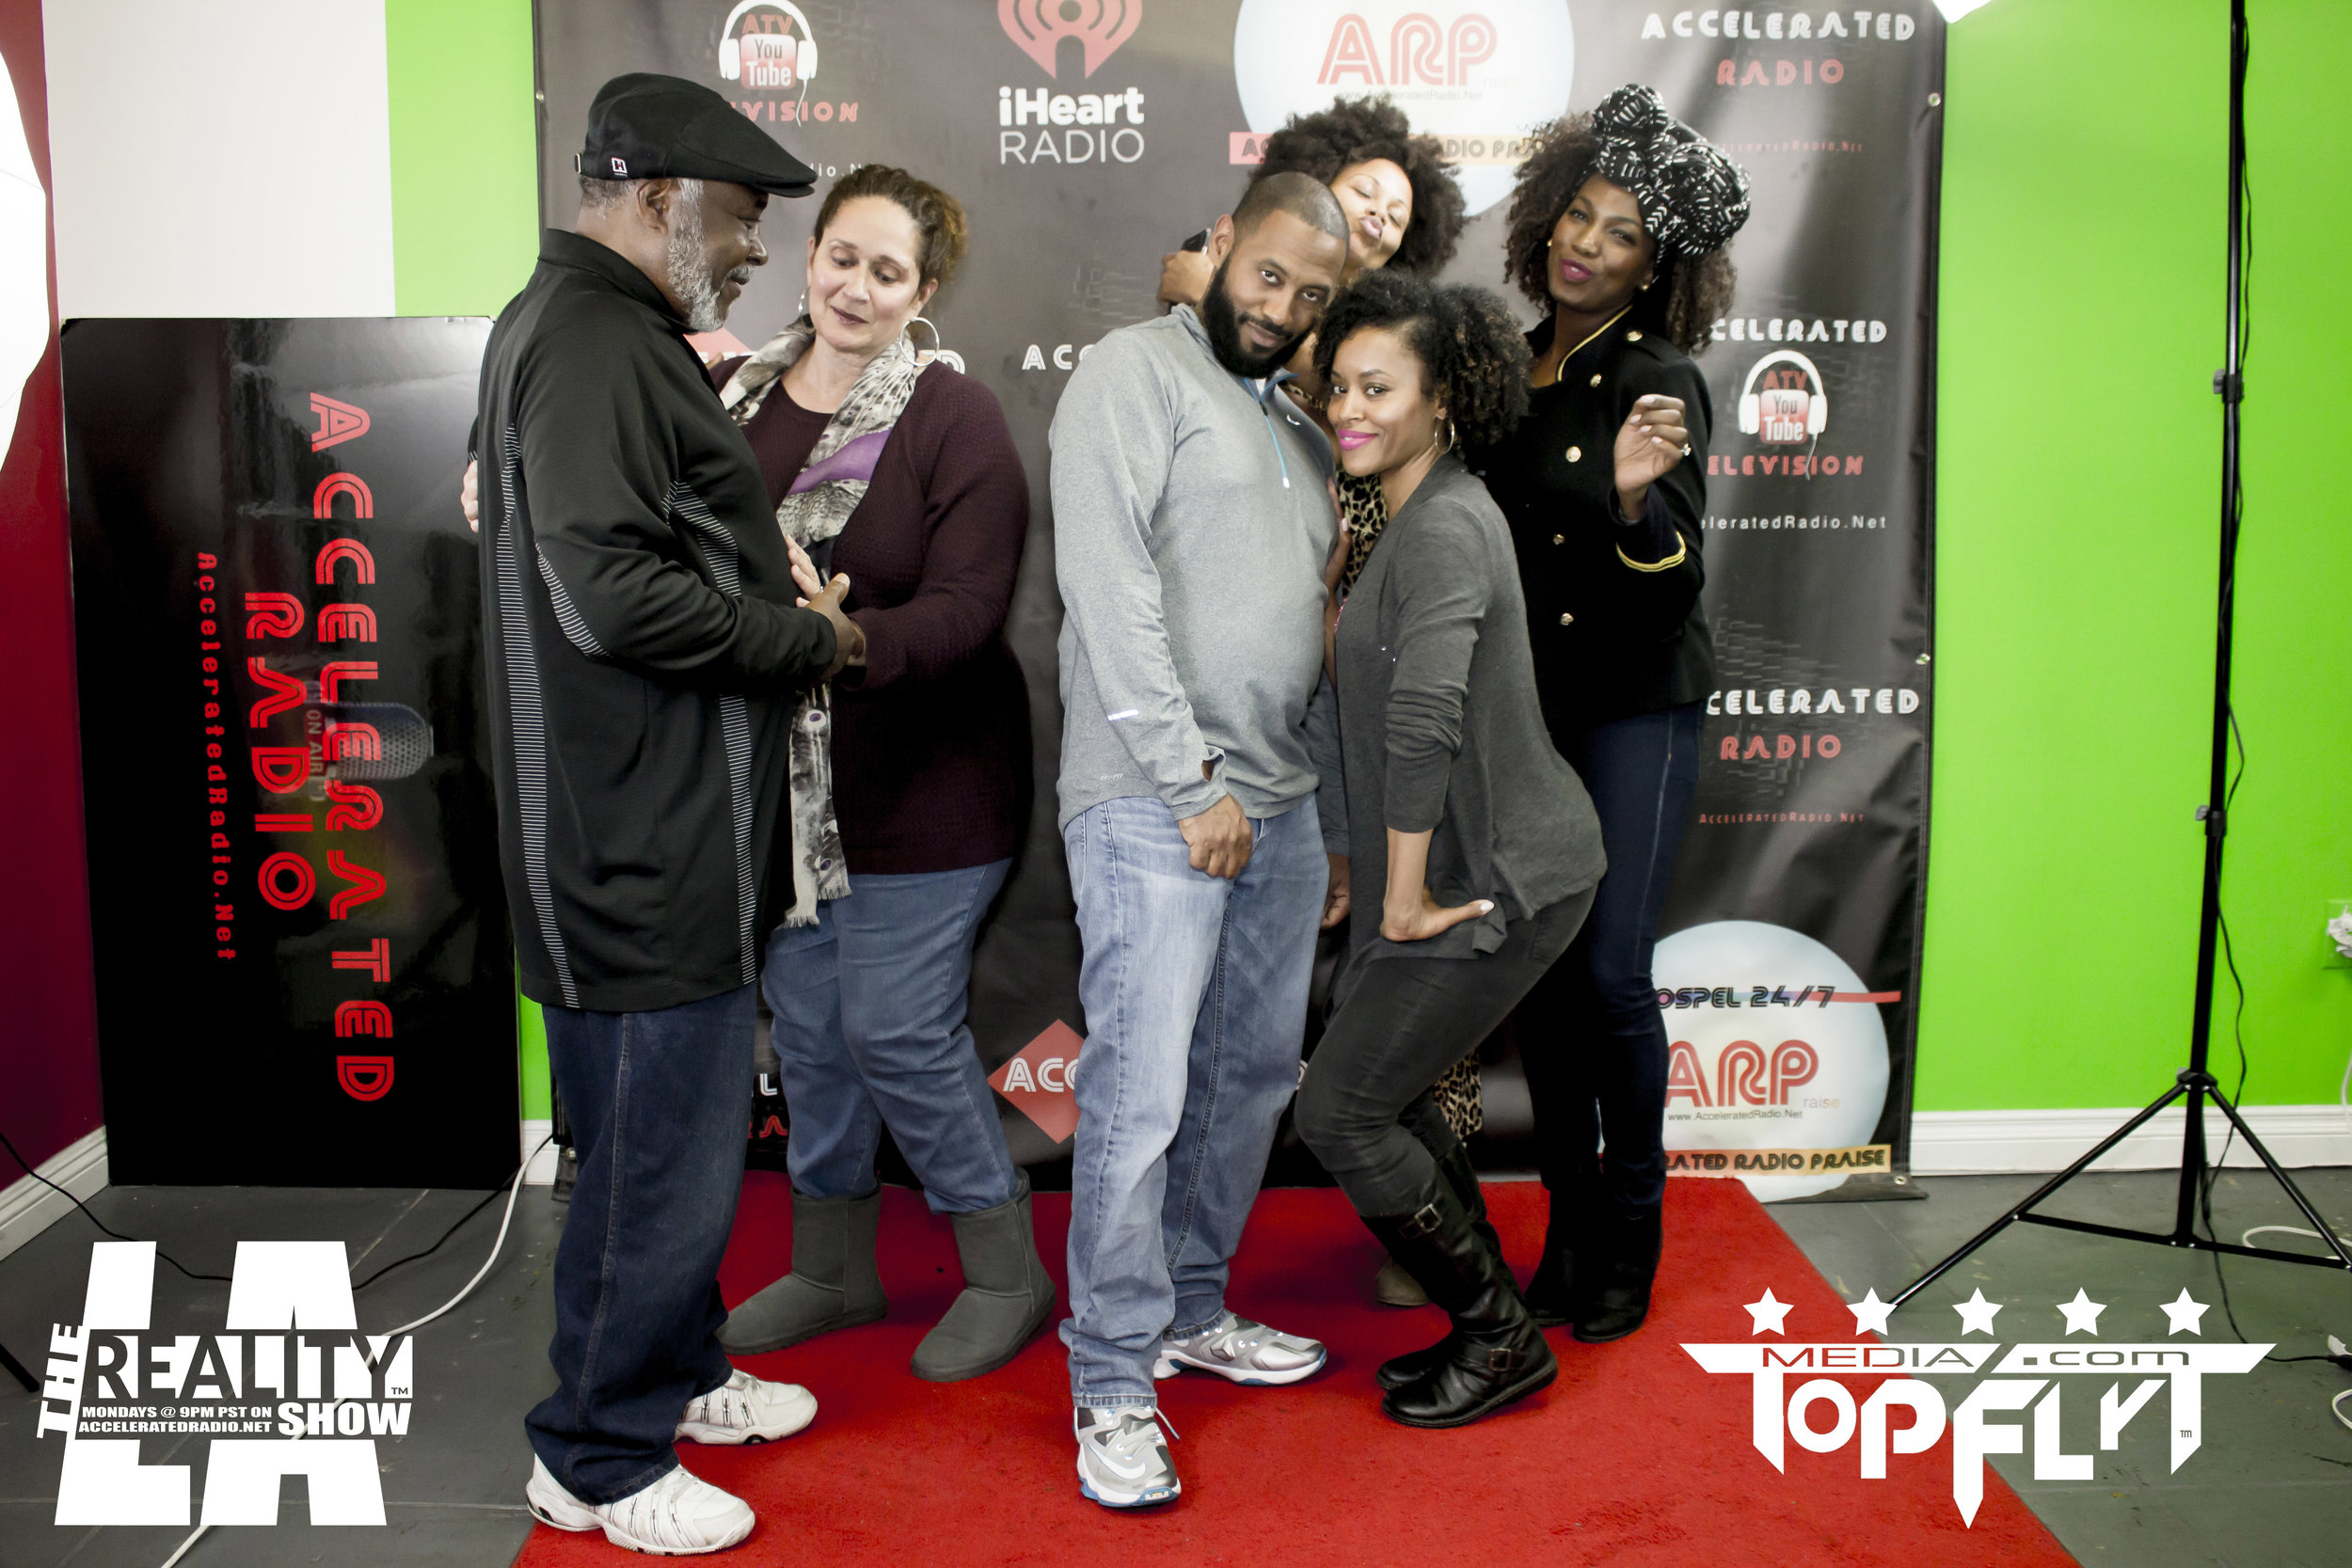 The Reality Show LA ft. Cast of FunnyMarriedStuff And Raquel Harris - 01-16-17_52.jpg